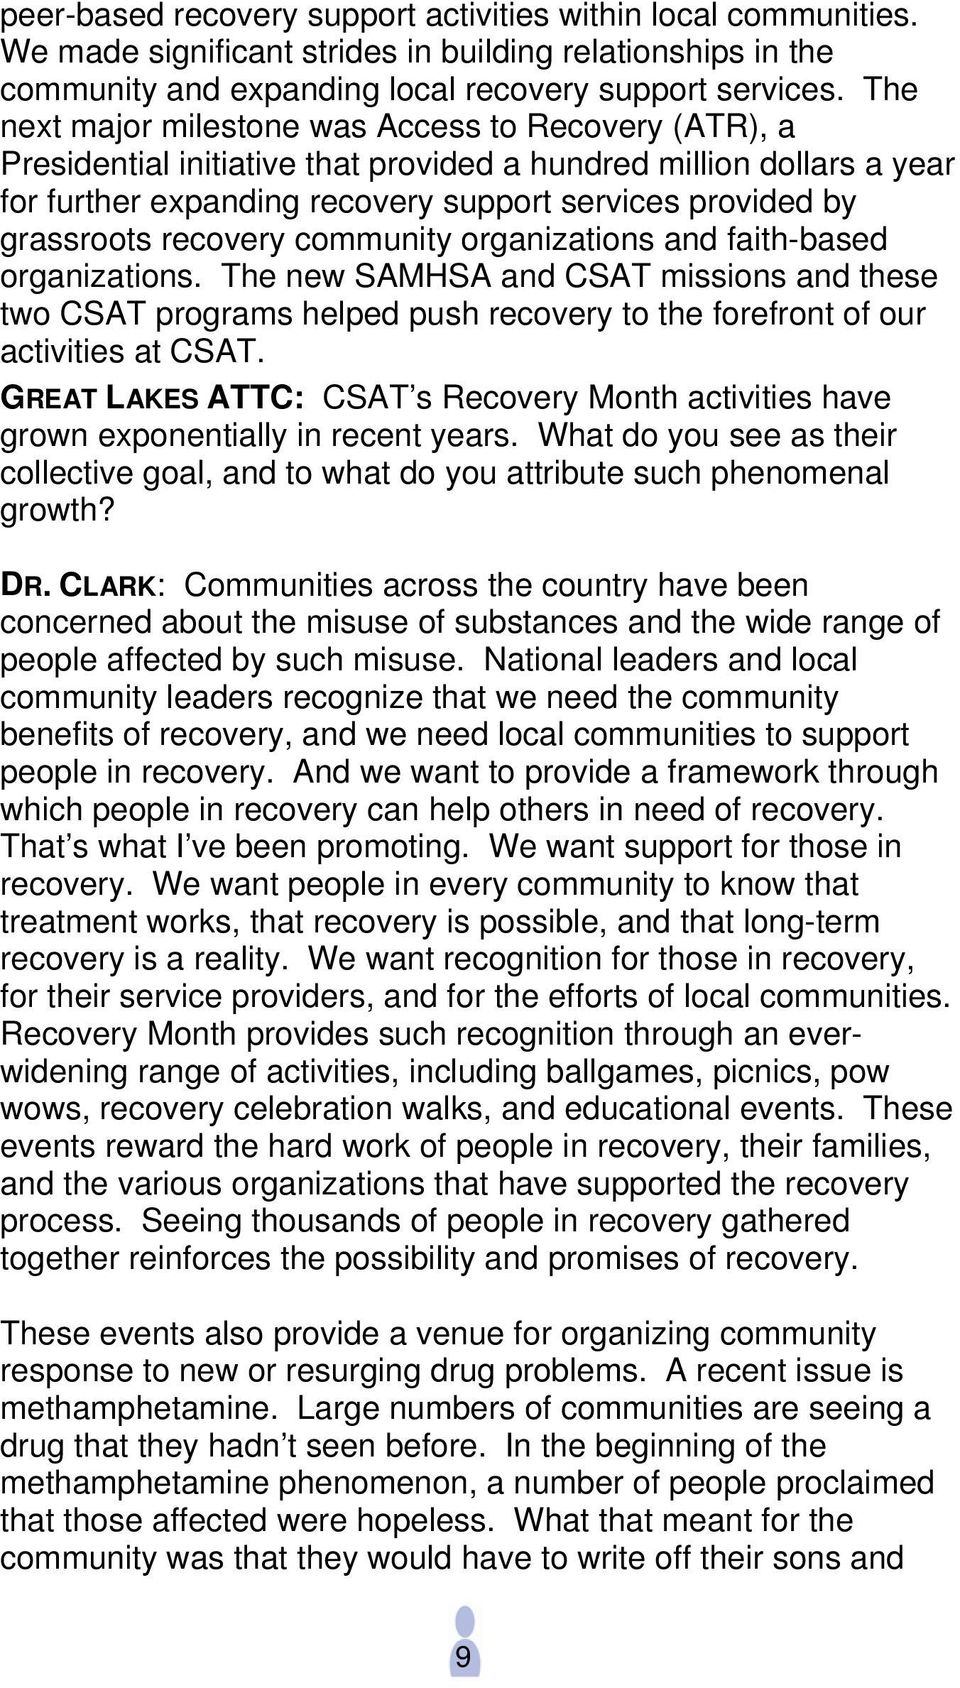 recovery community organizations and faith-based organizations. The new SAMHSA and CSAT missions and these two CSAT programs helped push recovery to the forefront of our activities at CSAT.